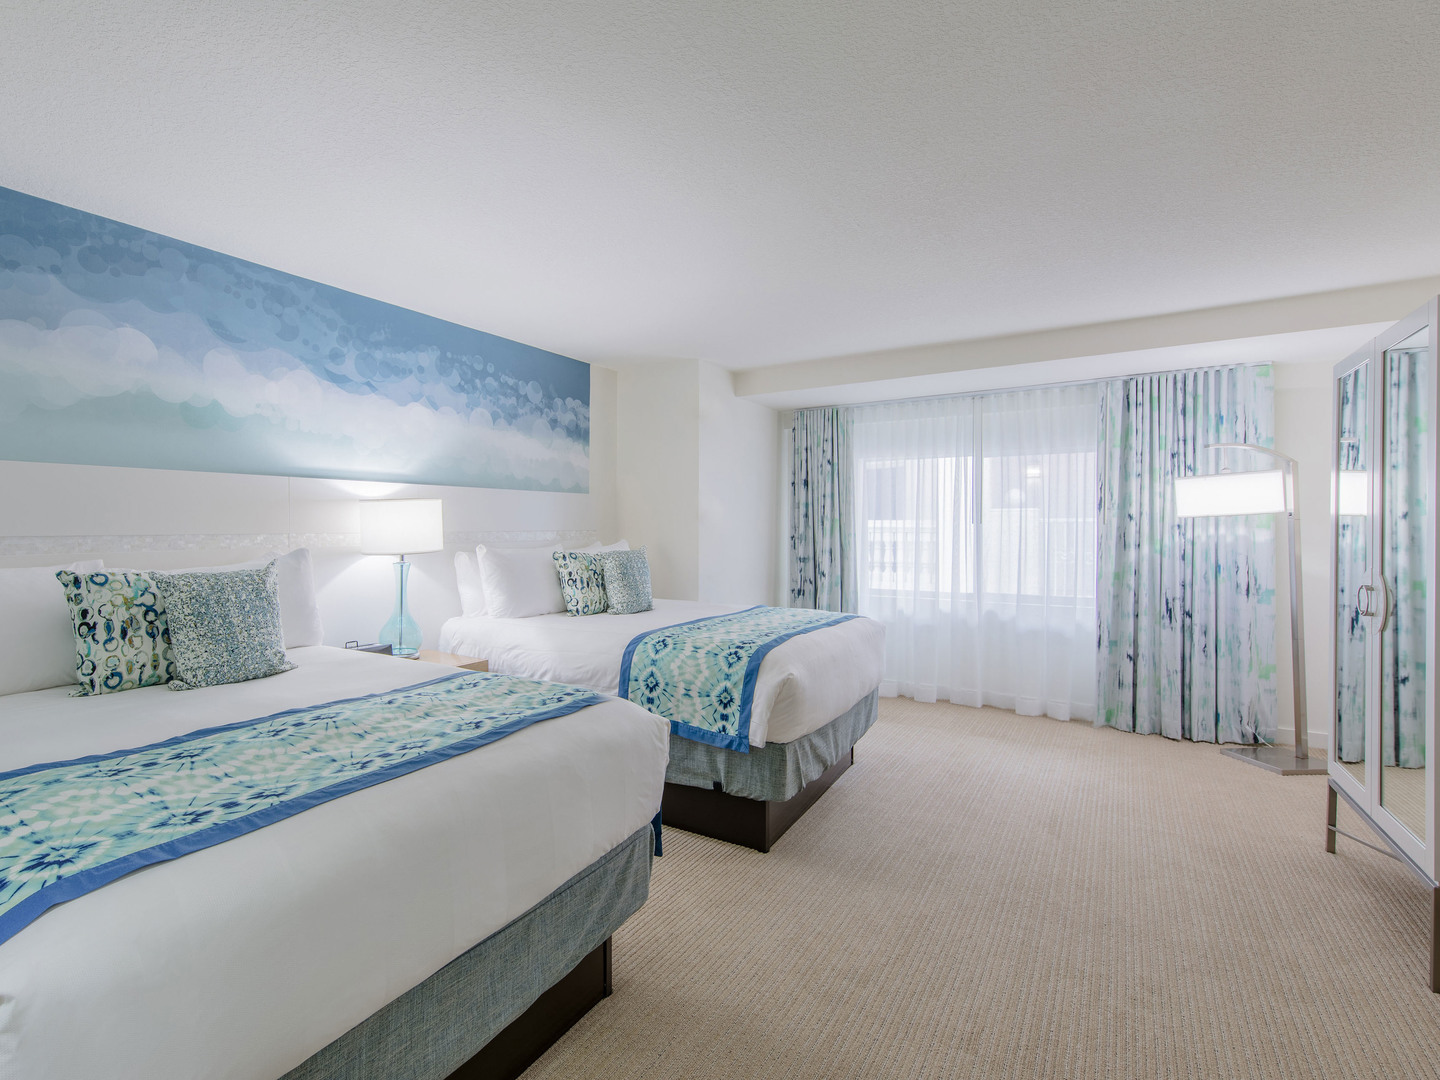 Marriott Vacation Club Pulse<span class='trademark'>®</span>, South Beach Studio Double Queens. Marriott Vacation Club Pulse<span class='trademark'>®</span>, South Beach is located in Miami Beach, Florida United States.